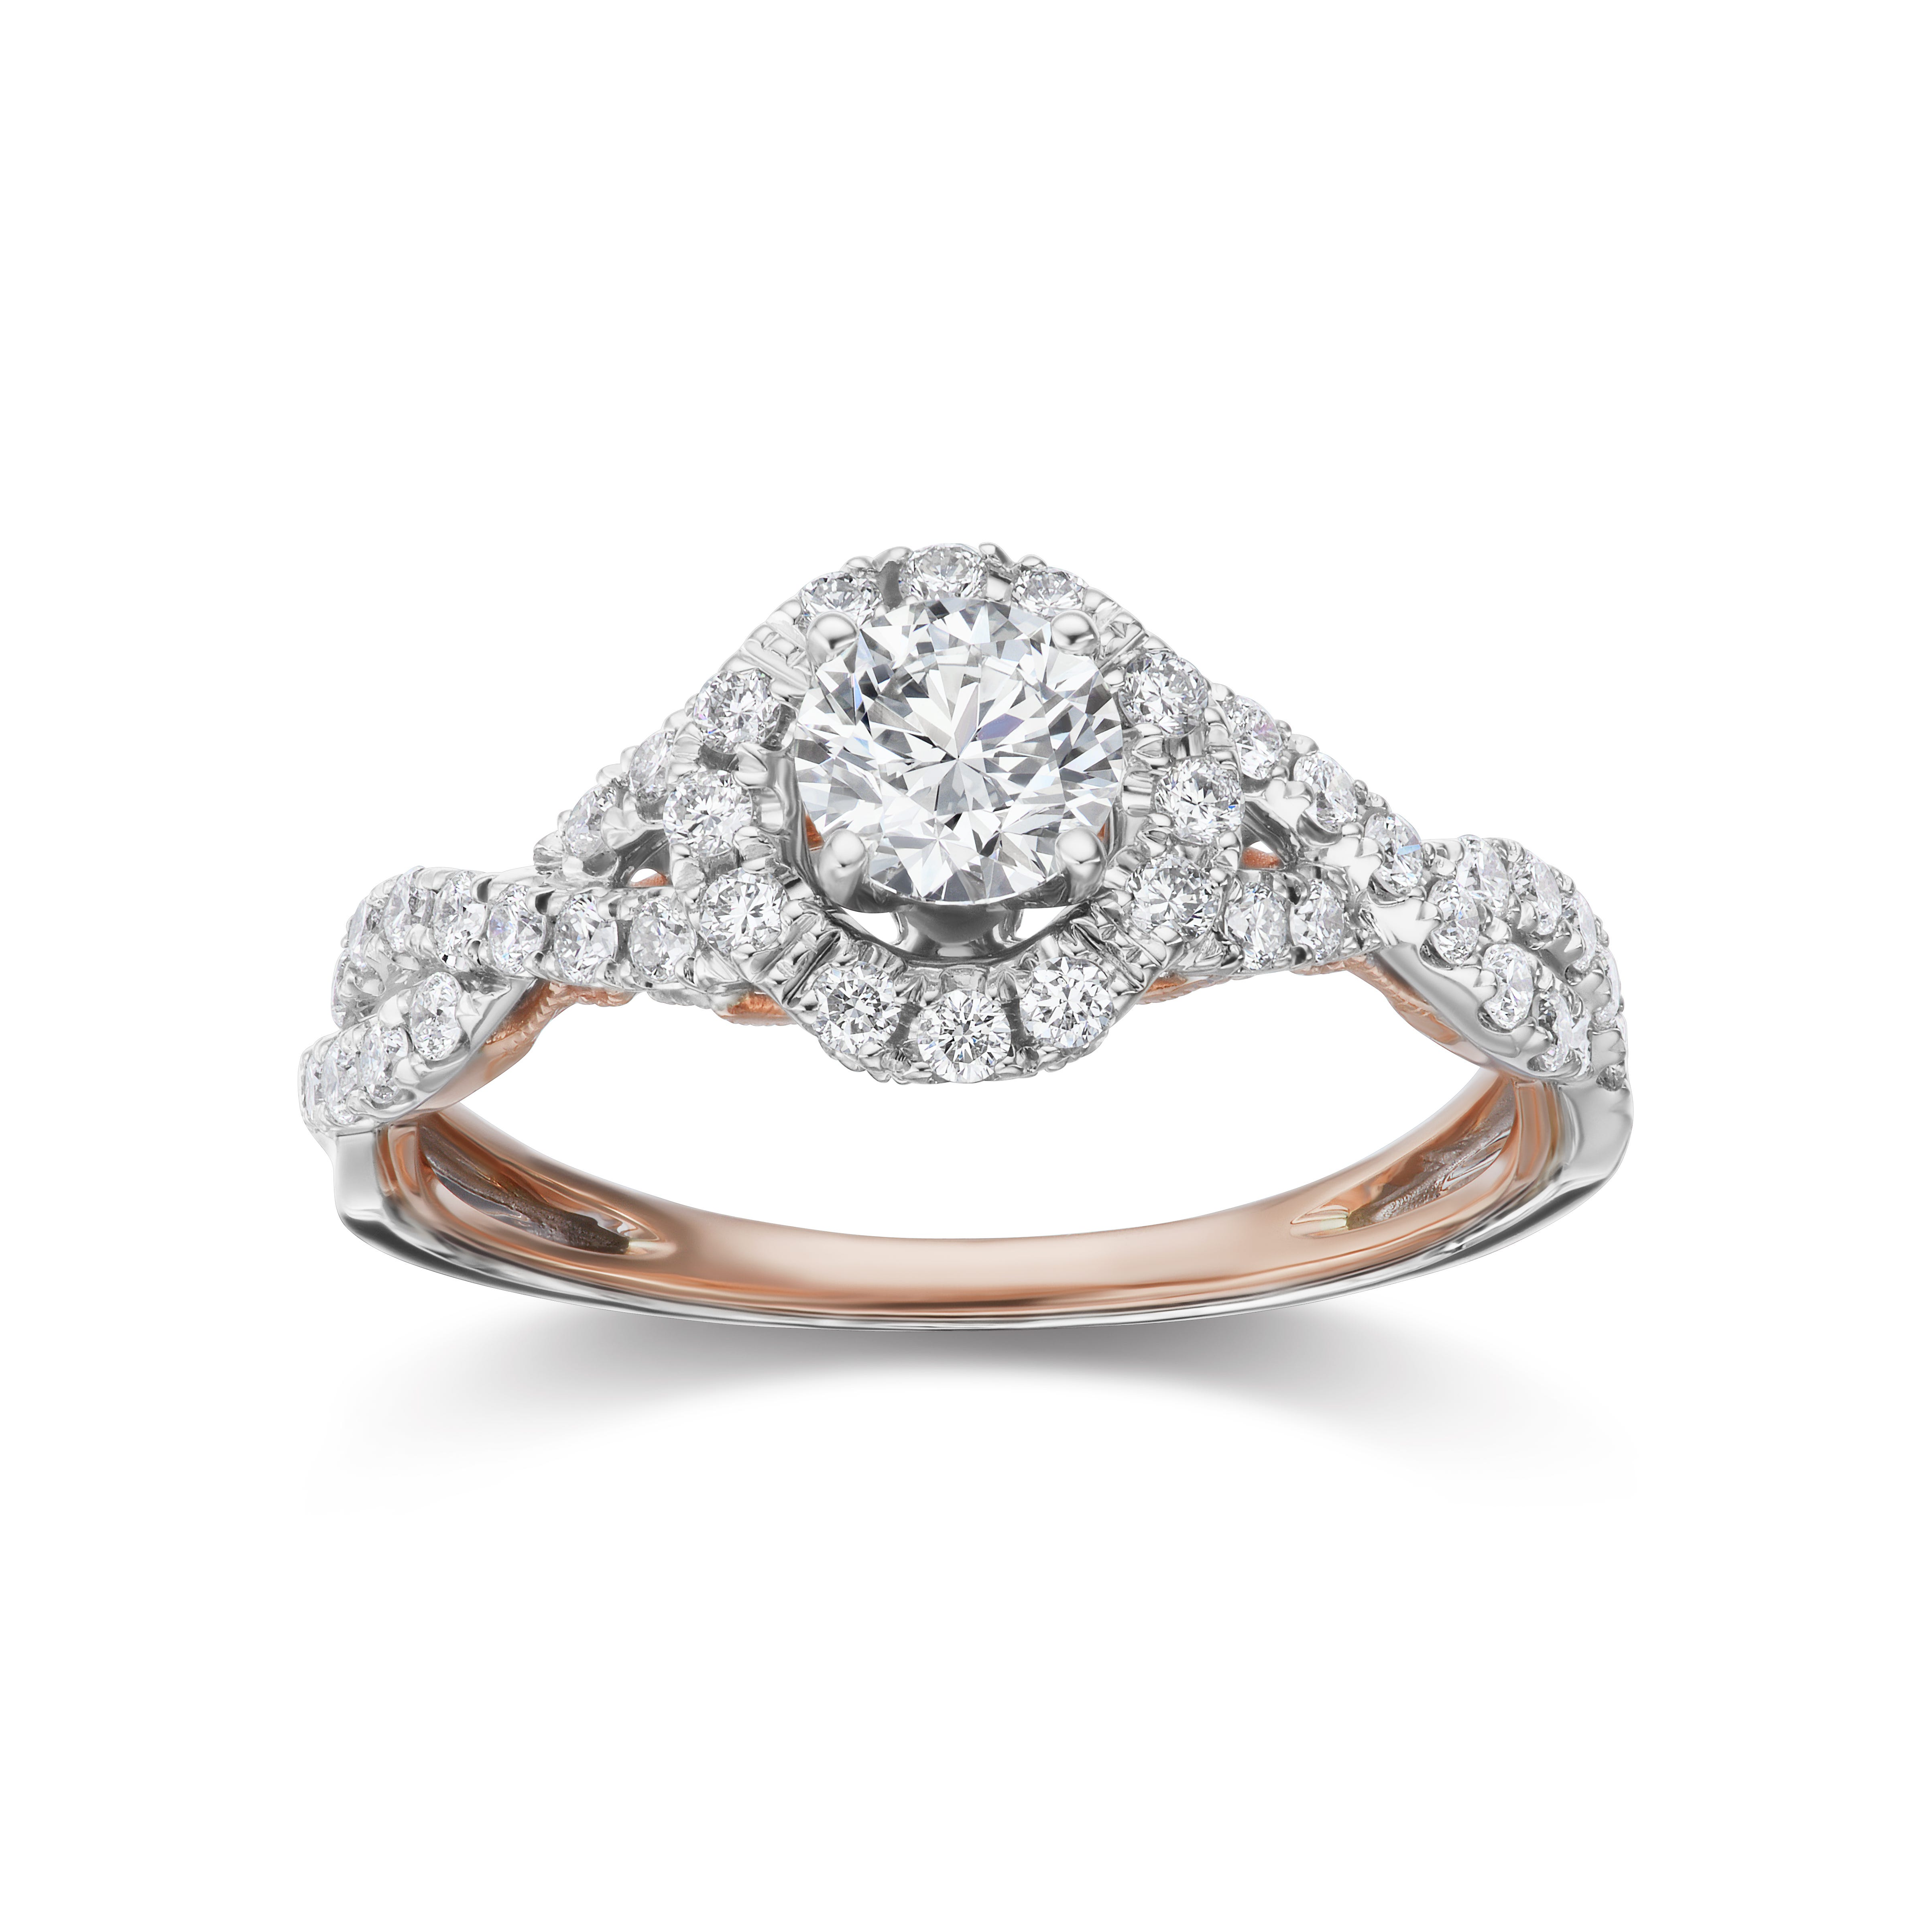 Lab-Crafted Infinity Twist Engagement Ring 1ctw. In 14k White & Rose Gold